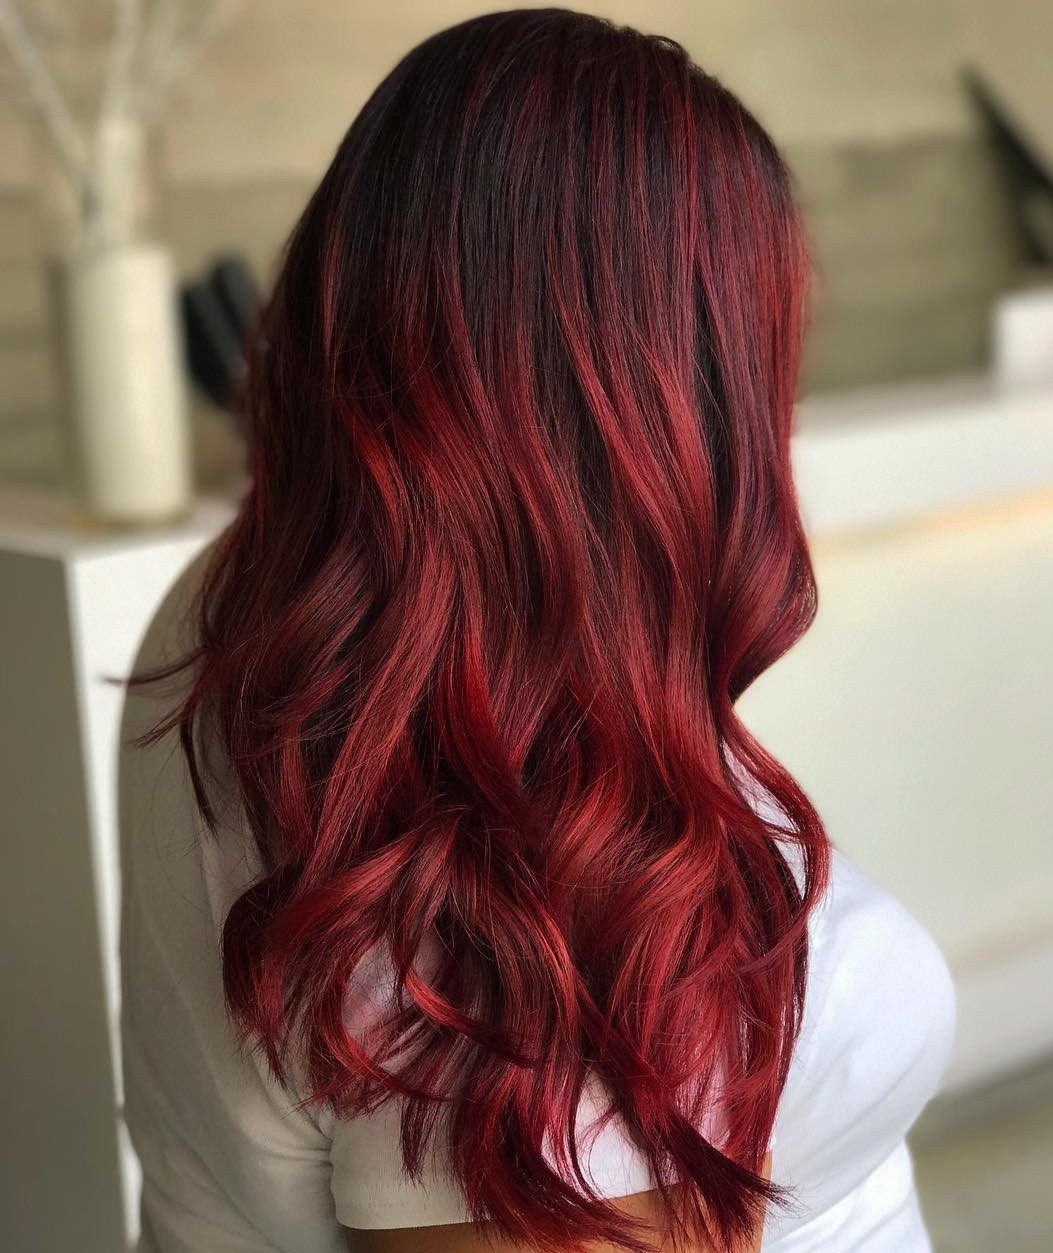 45 Shades Of Burgundy Hair Dark Burgundy Maroon Burgundy With Red Purple And Brown Highlights Red Balayage Burgundy Hair Red Hair Color